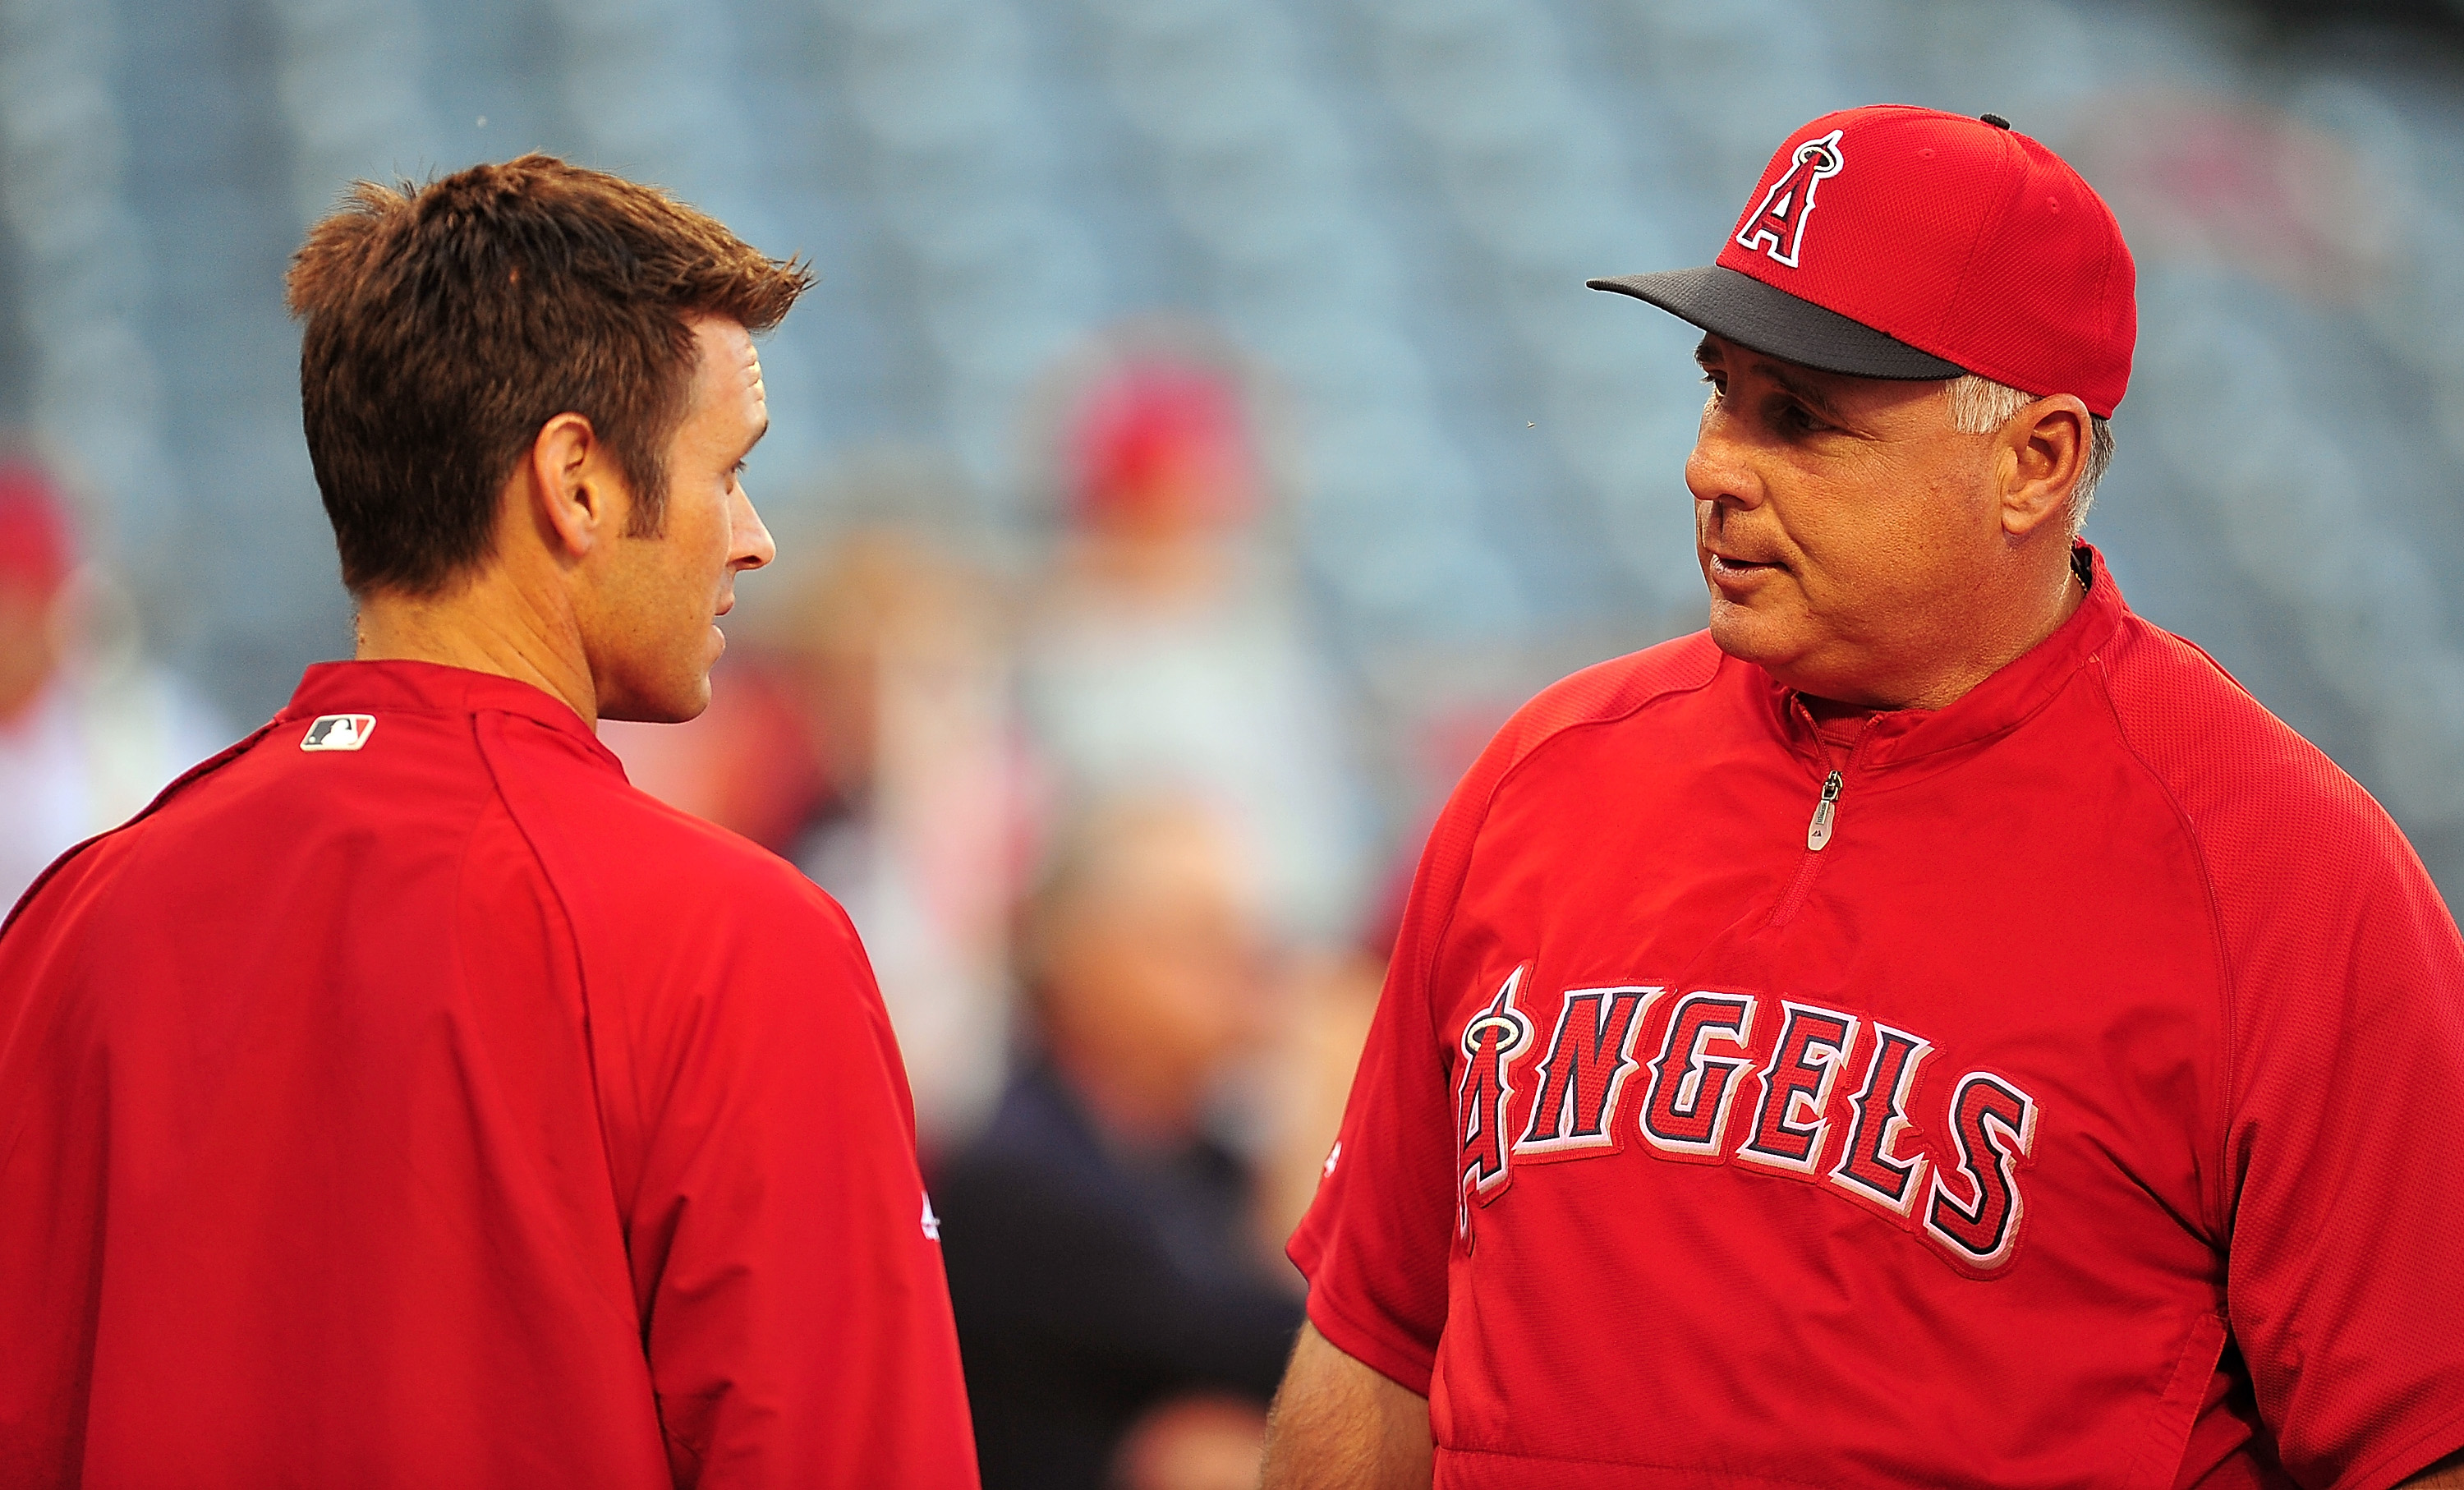 Angels GM Jerry Dipoto, left, and manager Mike Scioscia haven't been on the best of terms. (USA Today Sports)